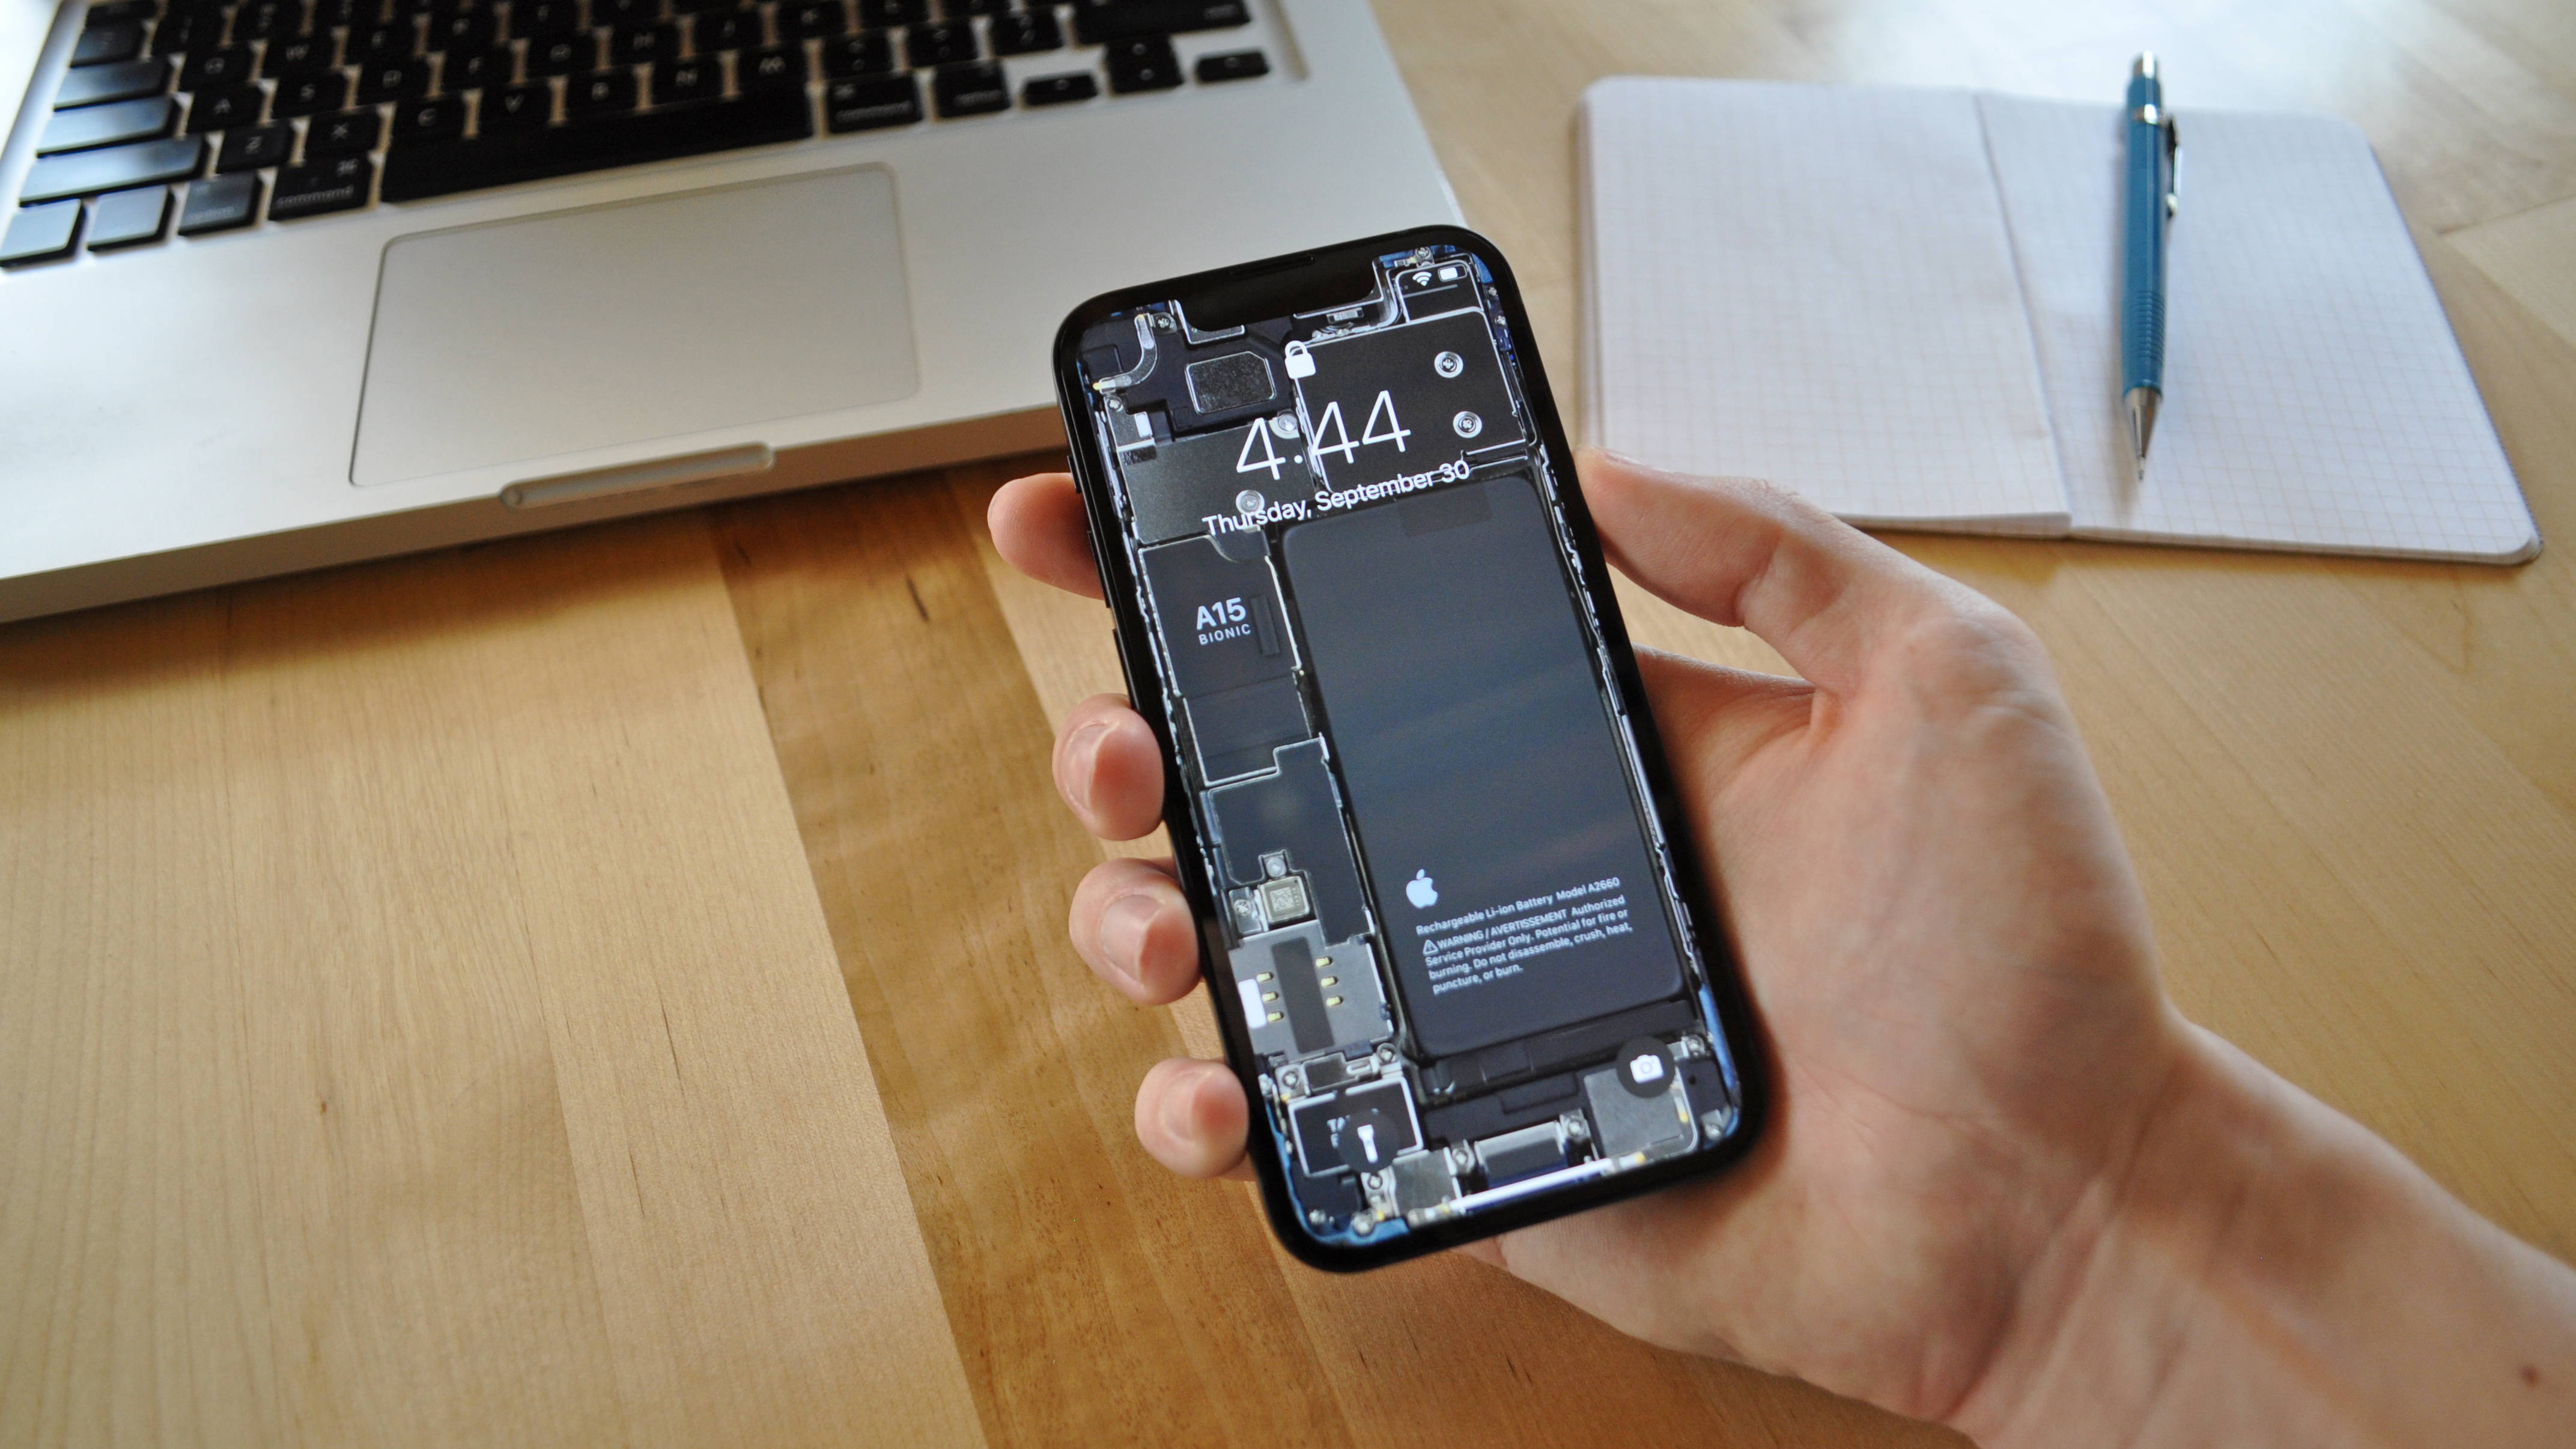 An iPhone 13 mini with internals wallpaper applied is held over a desk containing a MacBook and a notebook with pencil.